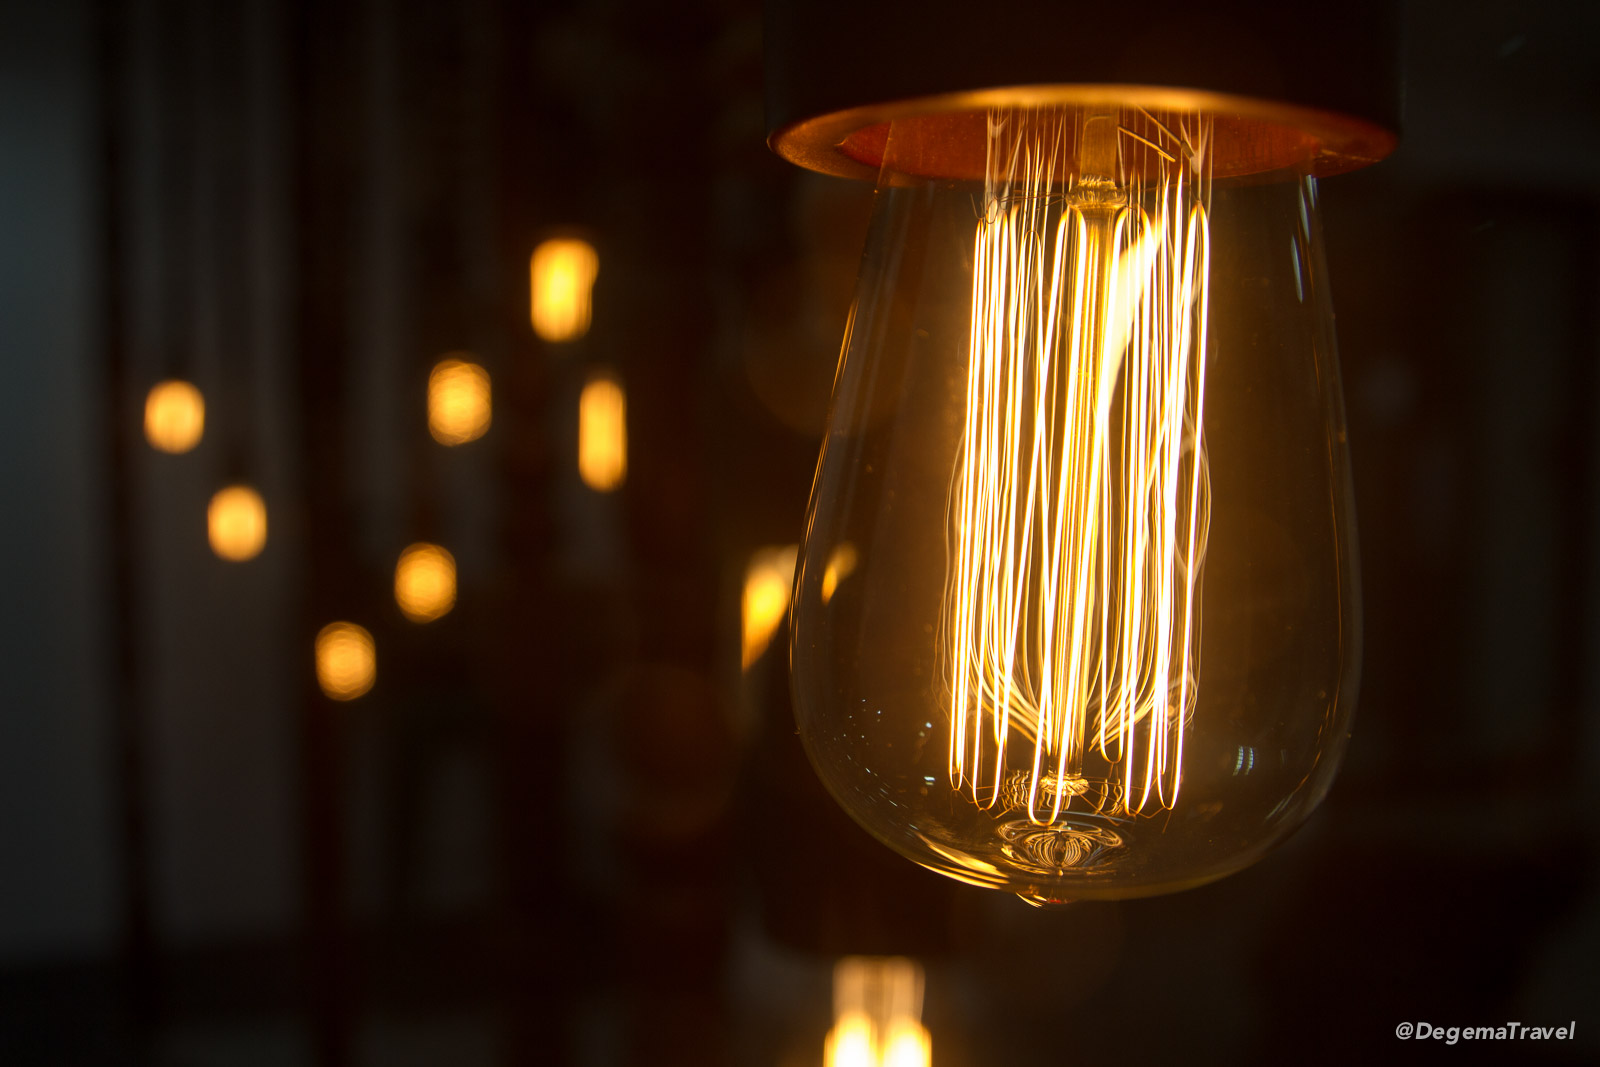 Old-fashioned light bulb